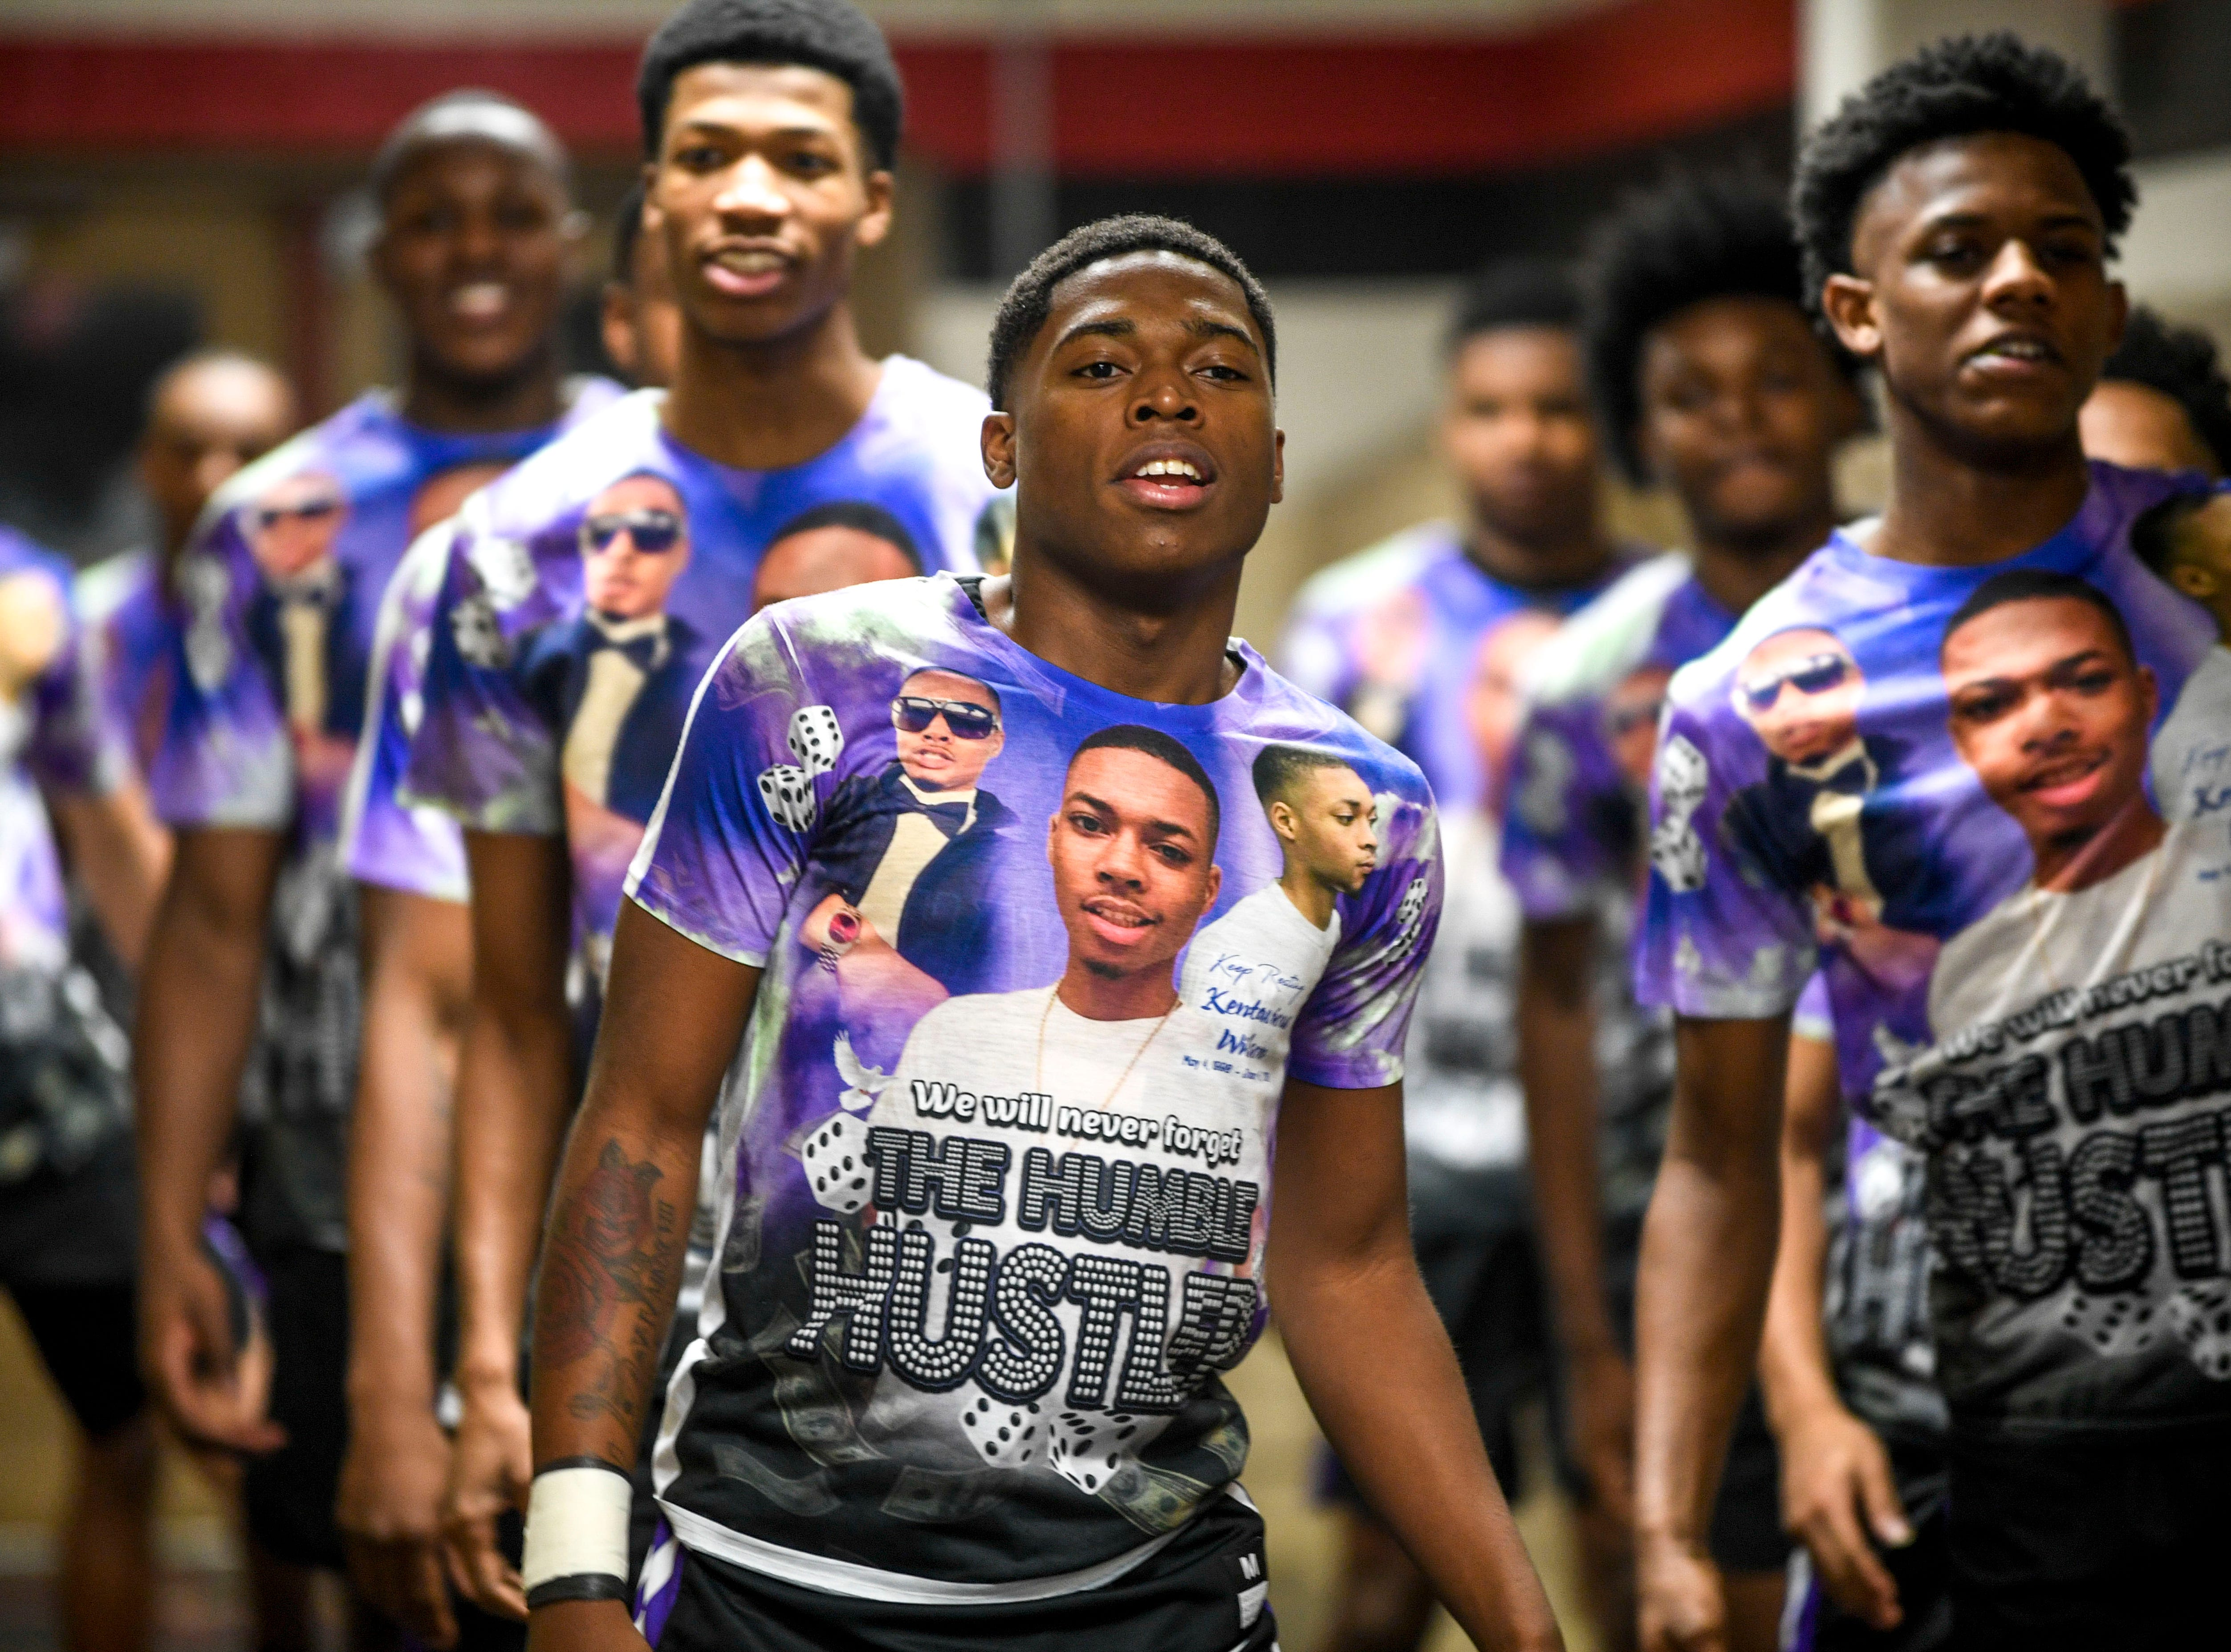 Kyron Stocking leads his team in warm ups during a TSSAA basketball game between South Side and Haywood on the anniversary of Kentavious Wilson, a former Haywood player's, death at South Side High School in Jackson, Tenn., on Saturday, Jan. 5, 2019.